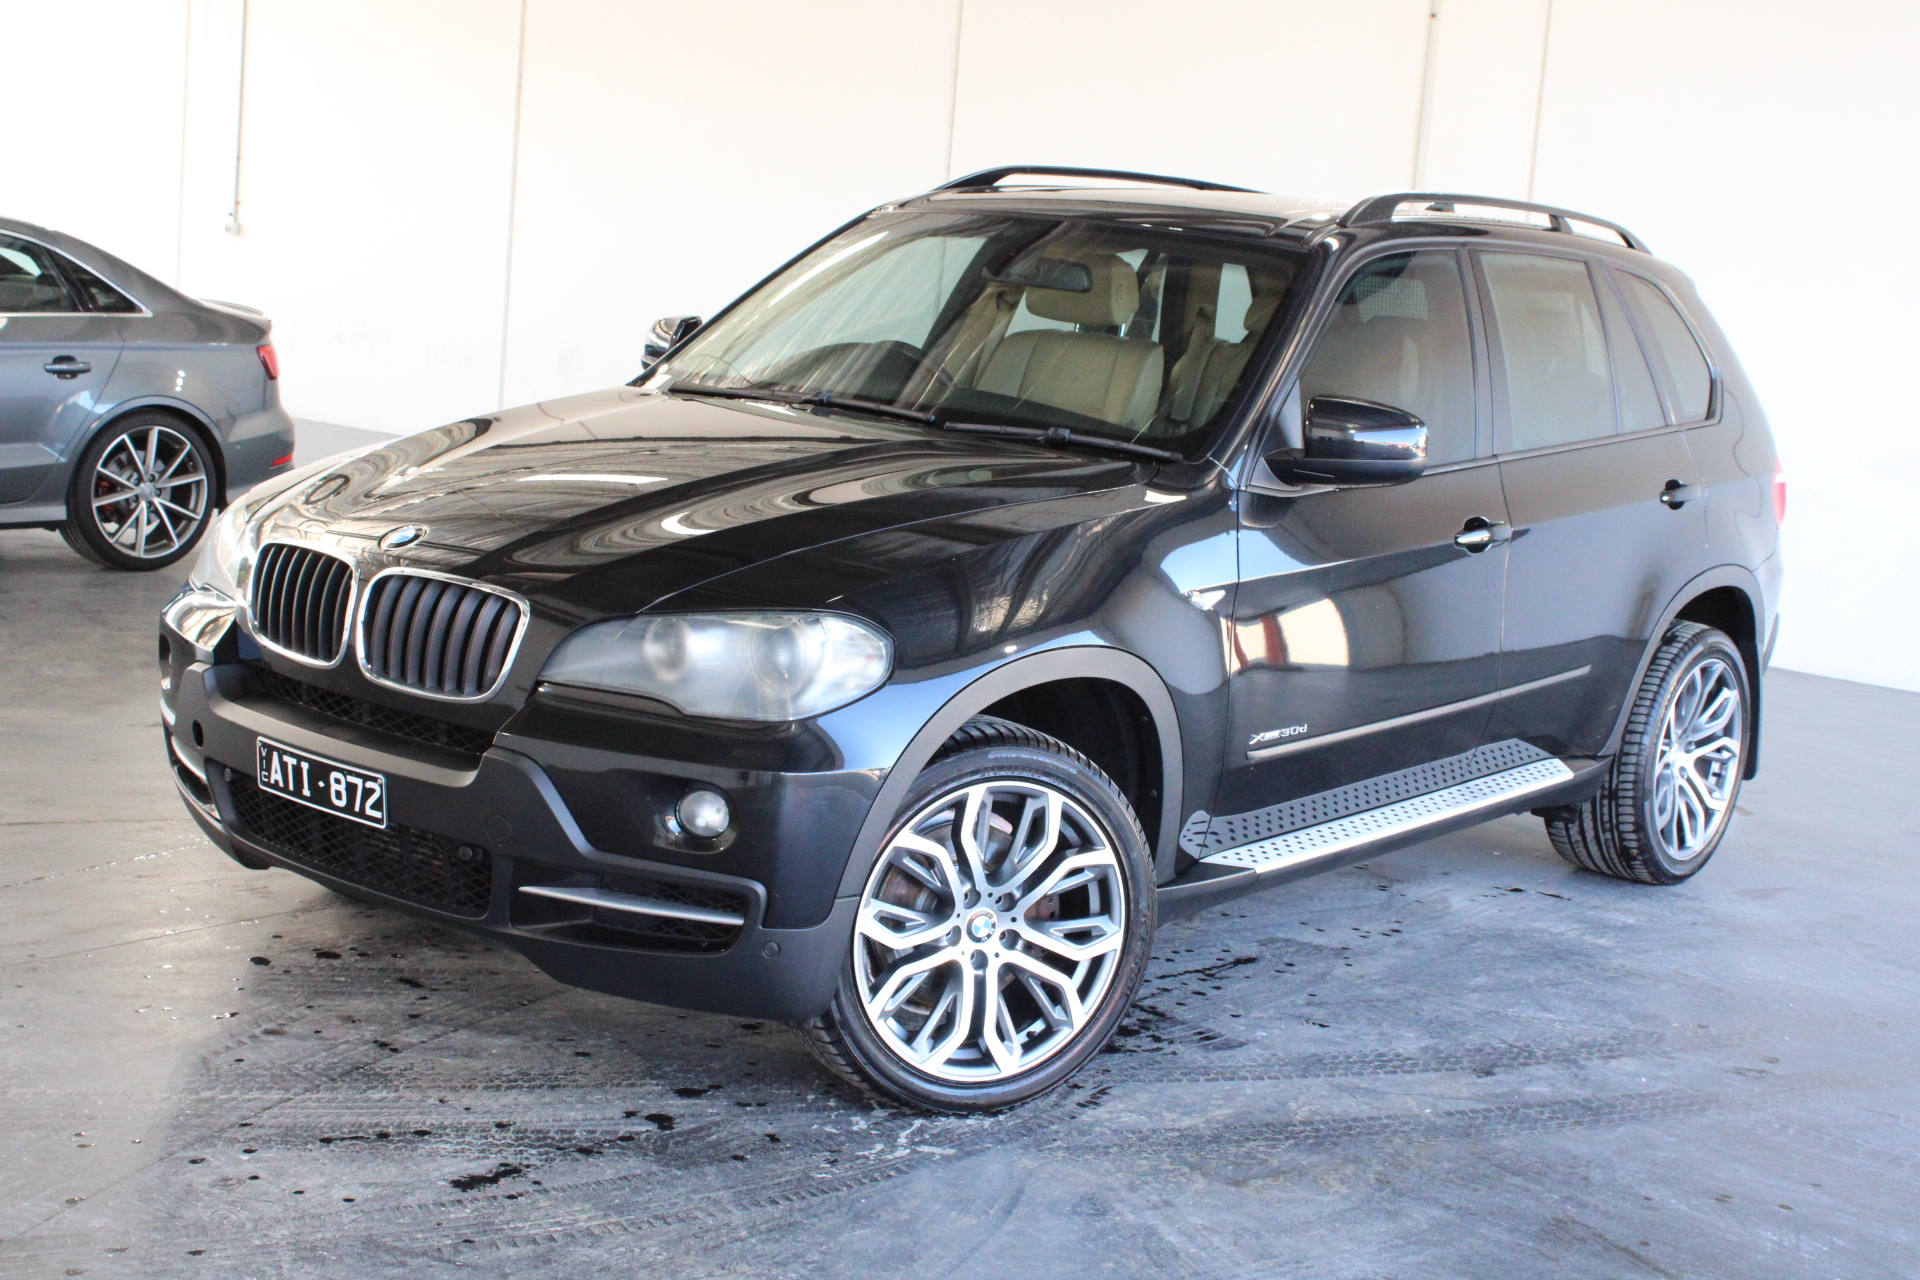 2010 BMW X5 3.0d E70 Turbo Diesel Automatic Wagon